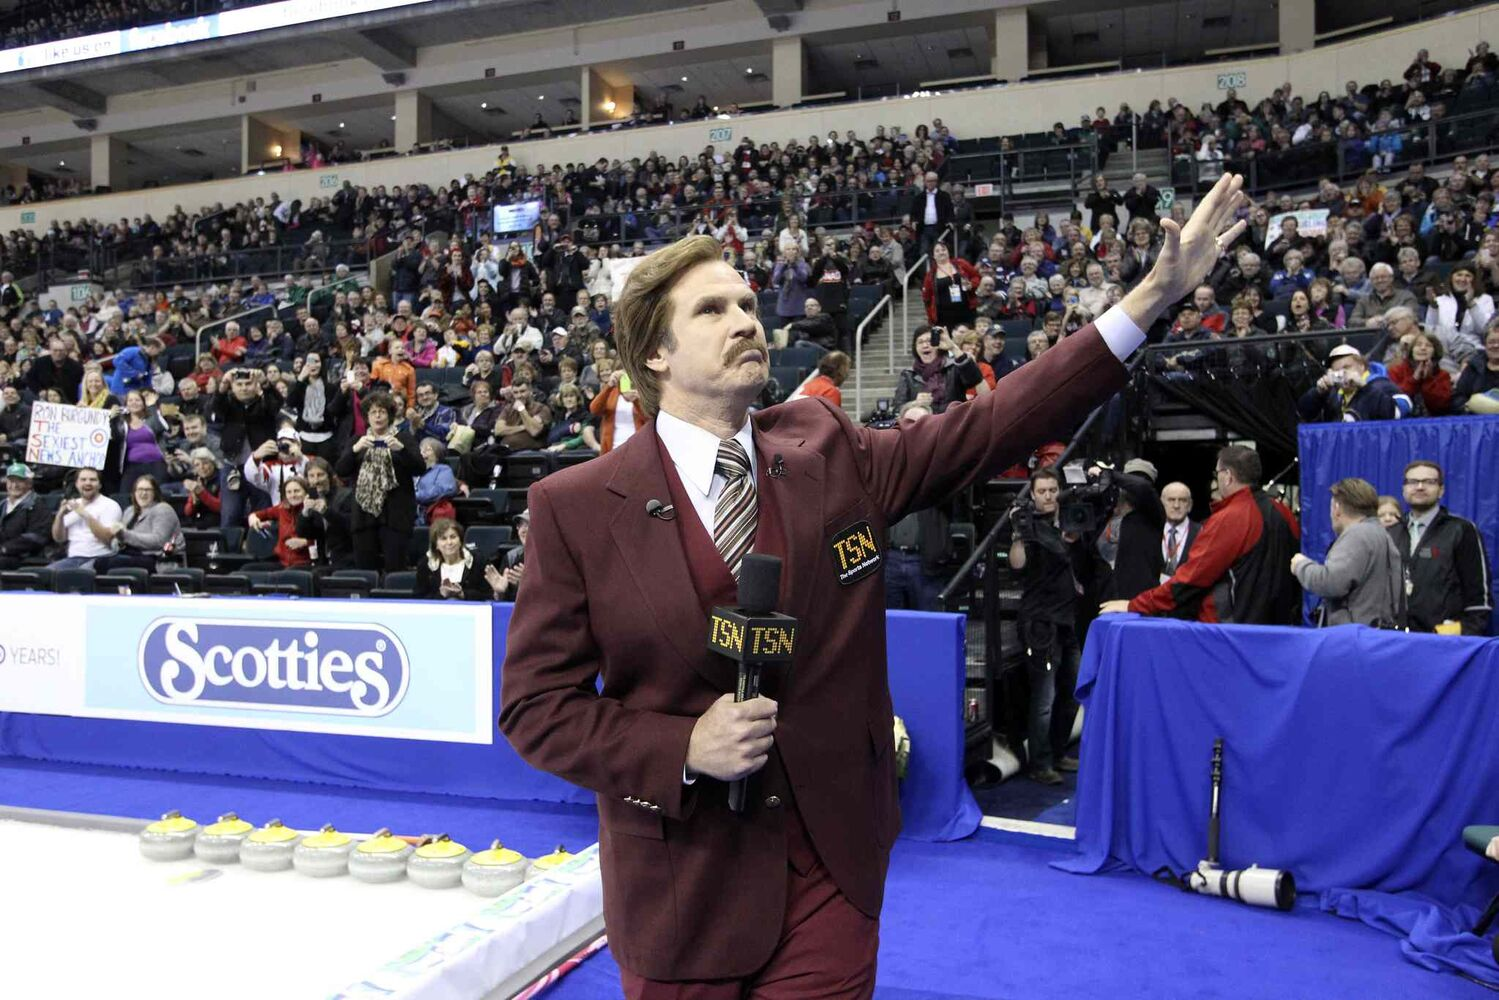 Ron Burgundy waves to his fans during the opening ceremony. (MIKE DEAL / WINNIPEG FREE PRESS)